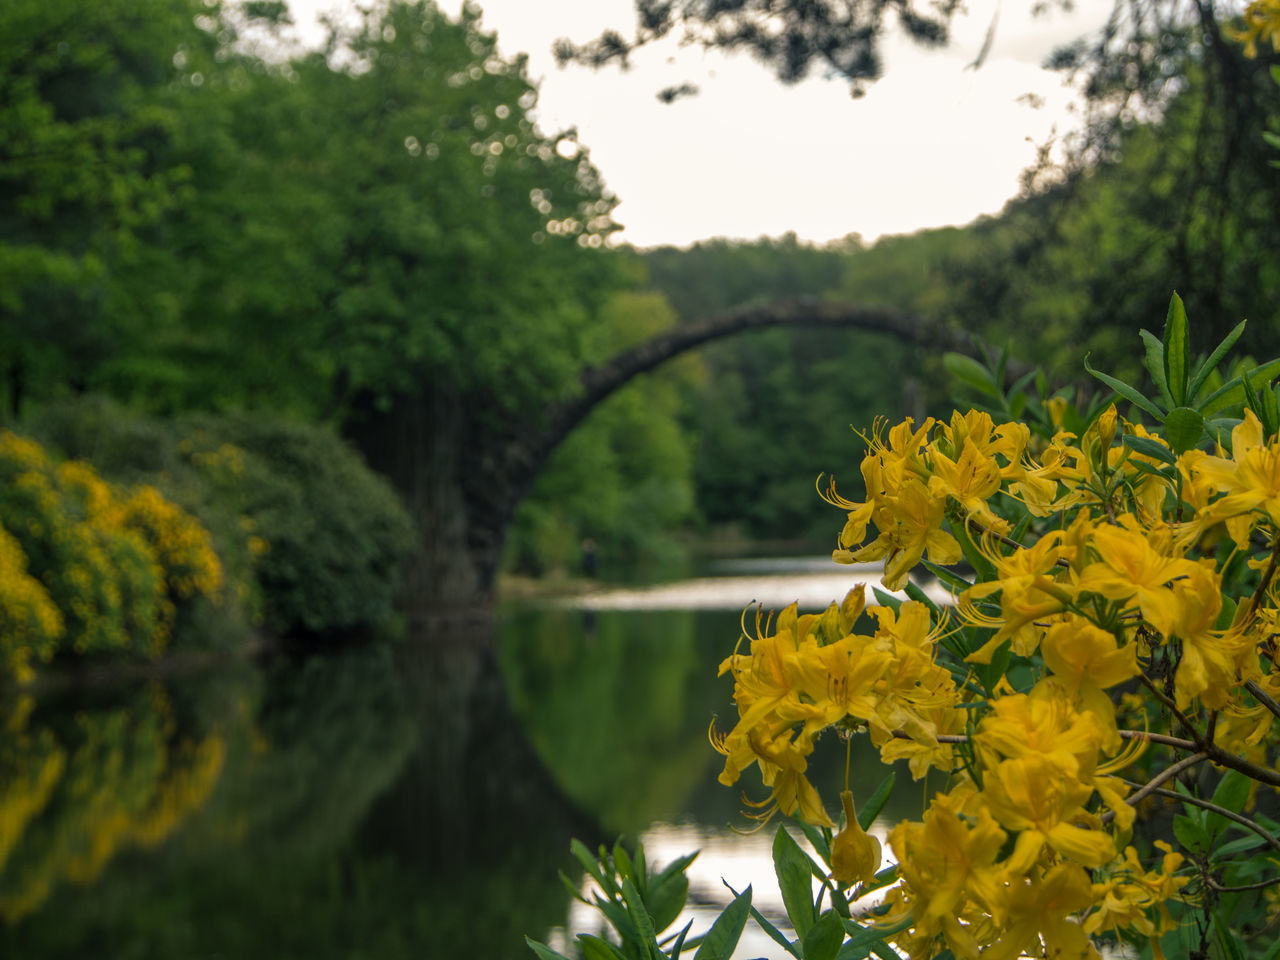 Blooming Blossom Botany Close-up Devilsbridge Flower Flower Head Focus On Foreground Fragility Freshness Green Color Growth In Bloom Nature No People Outdoors Petal Plant Rakotzbridge Selective Focus Stem Tranquil Scene Tranquility Tree Yellow